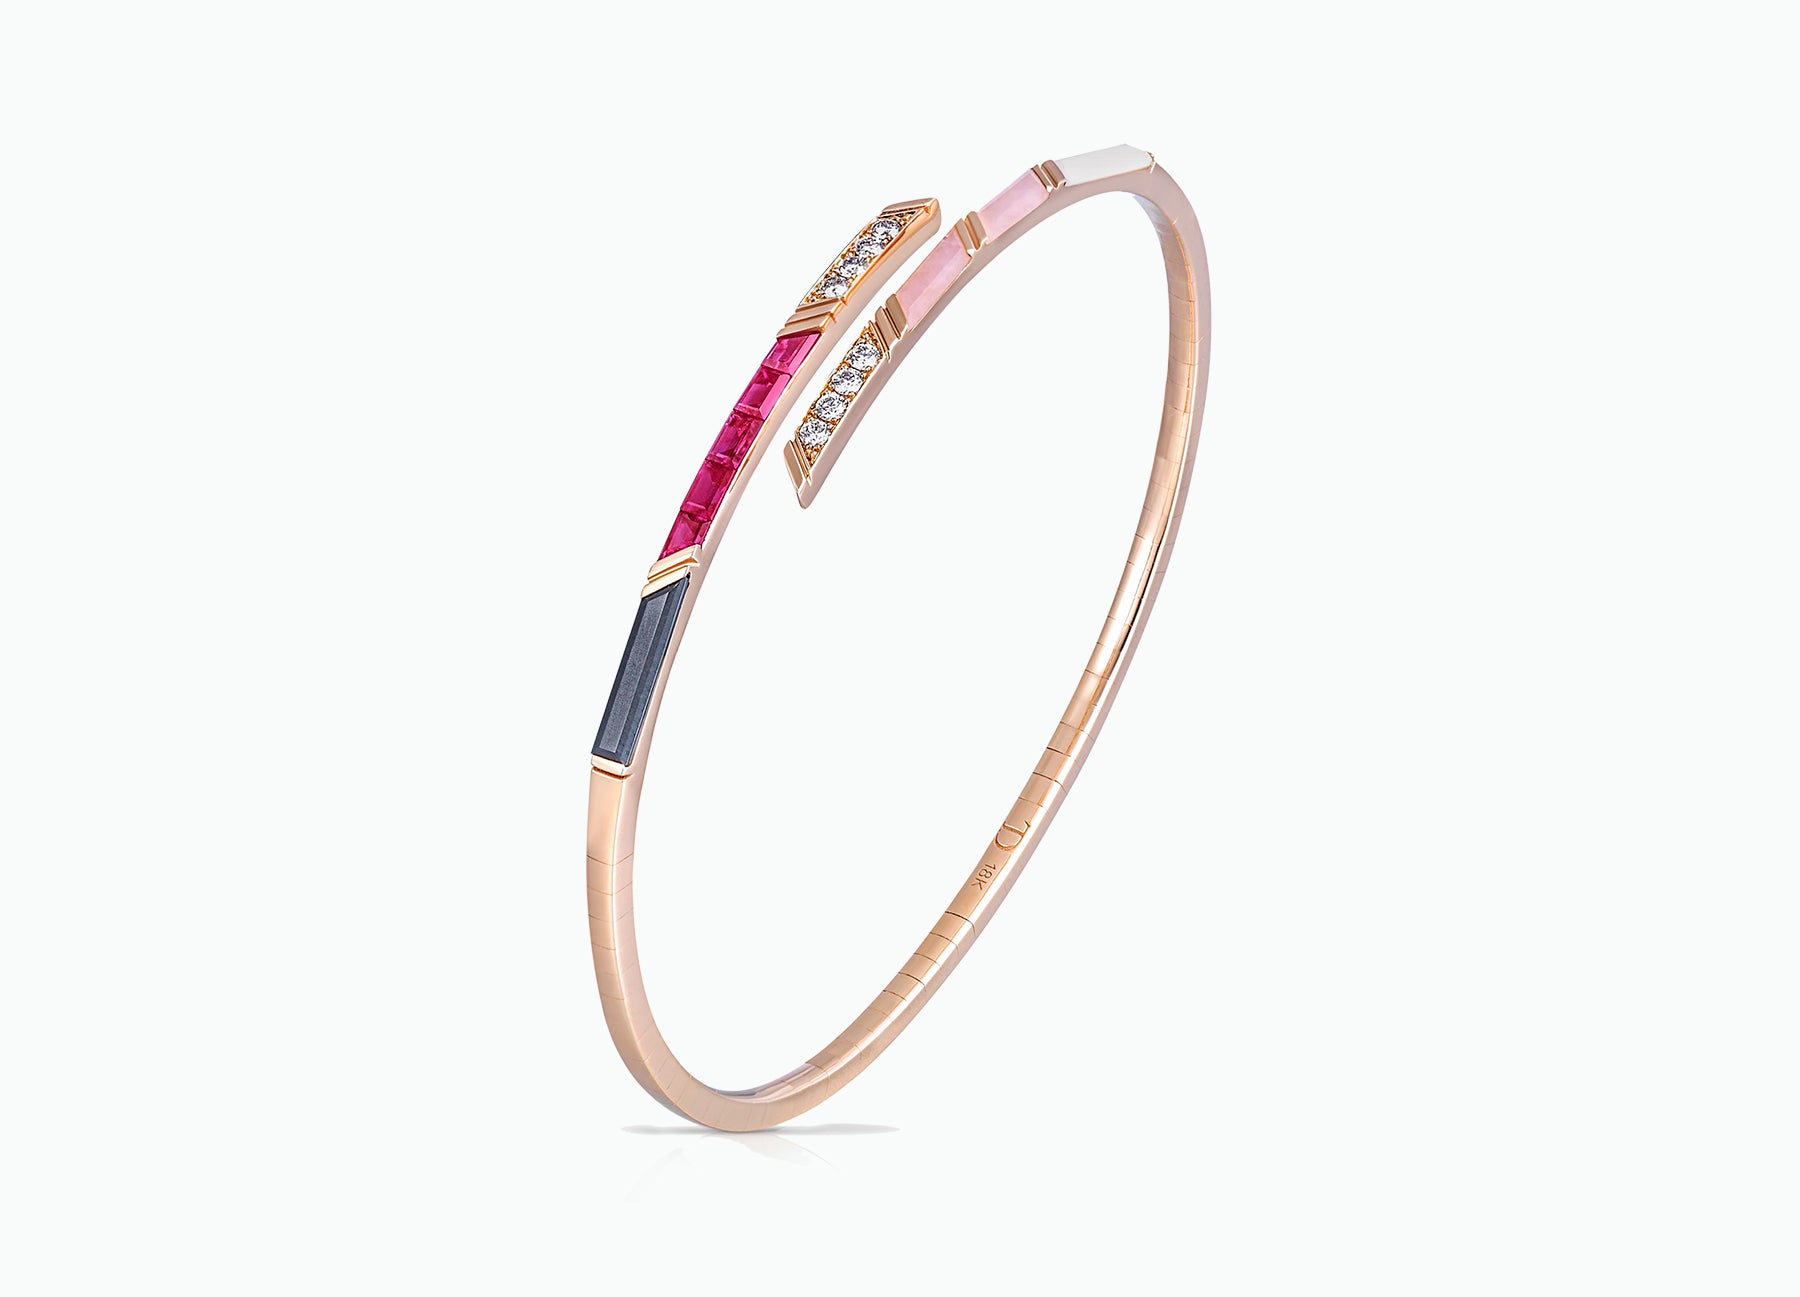 Ruby diamond and pink opal bangle in 18K rose gold by Tomasz Donocik Side View